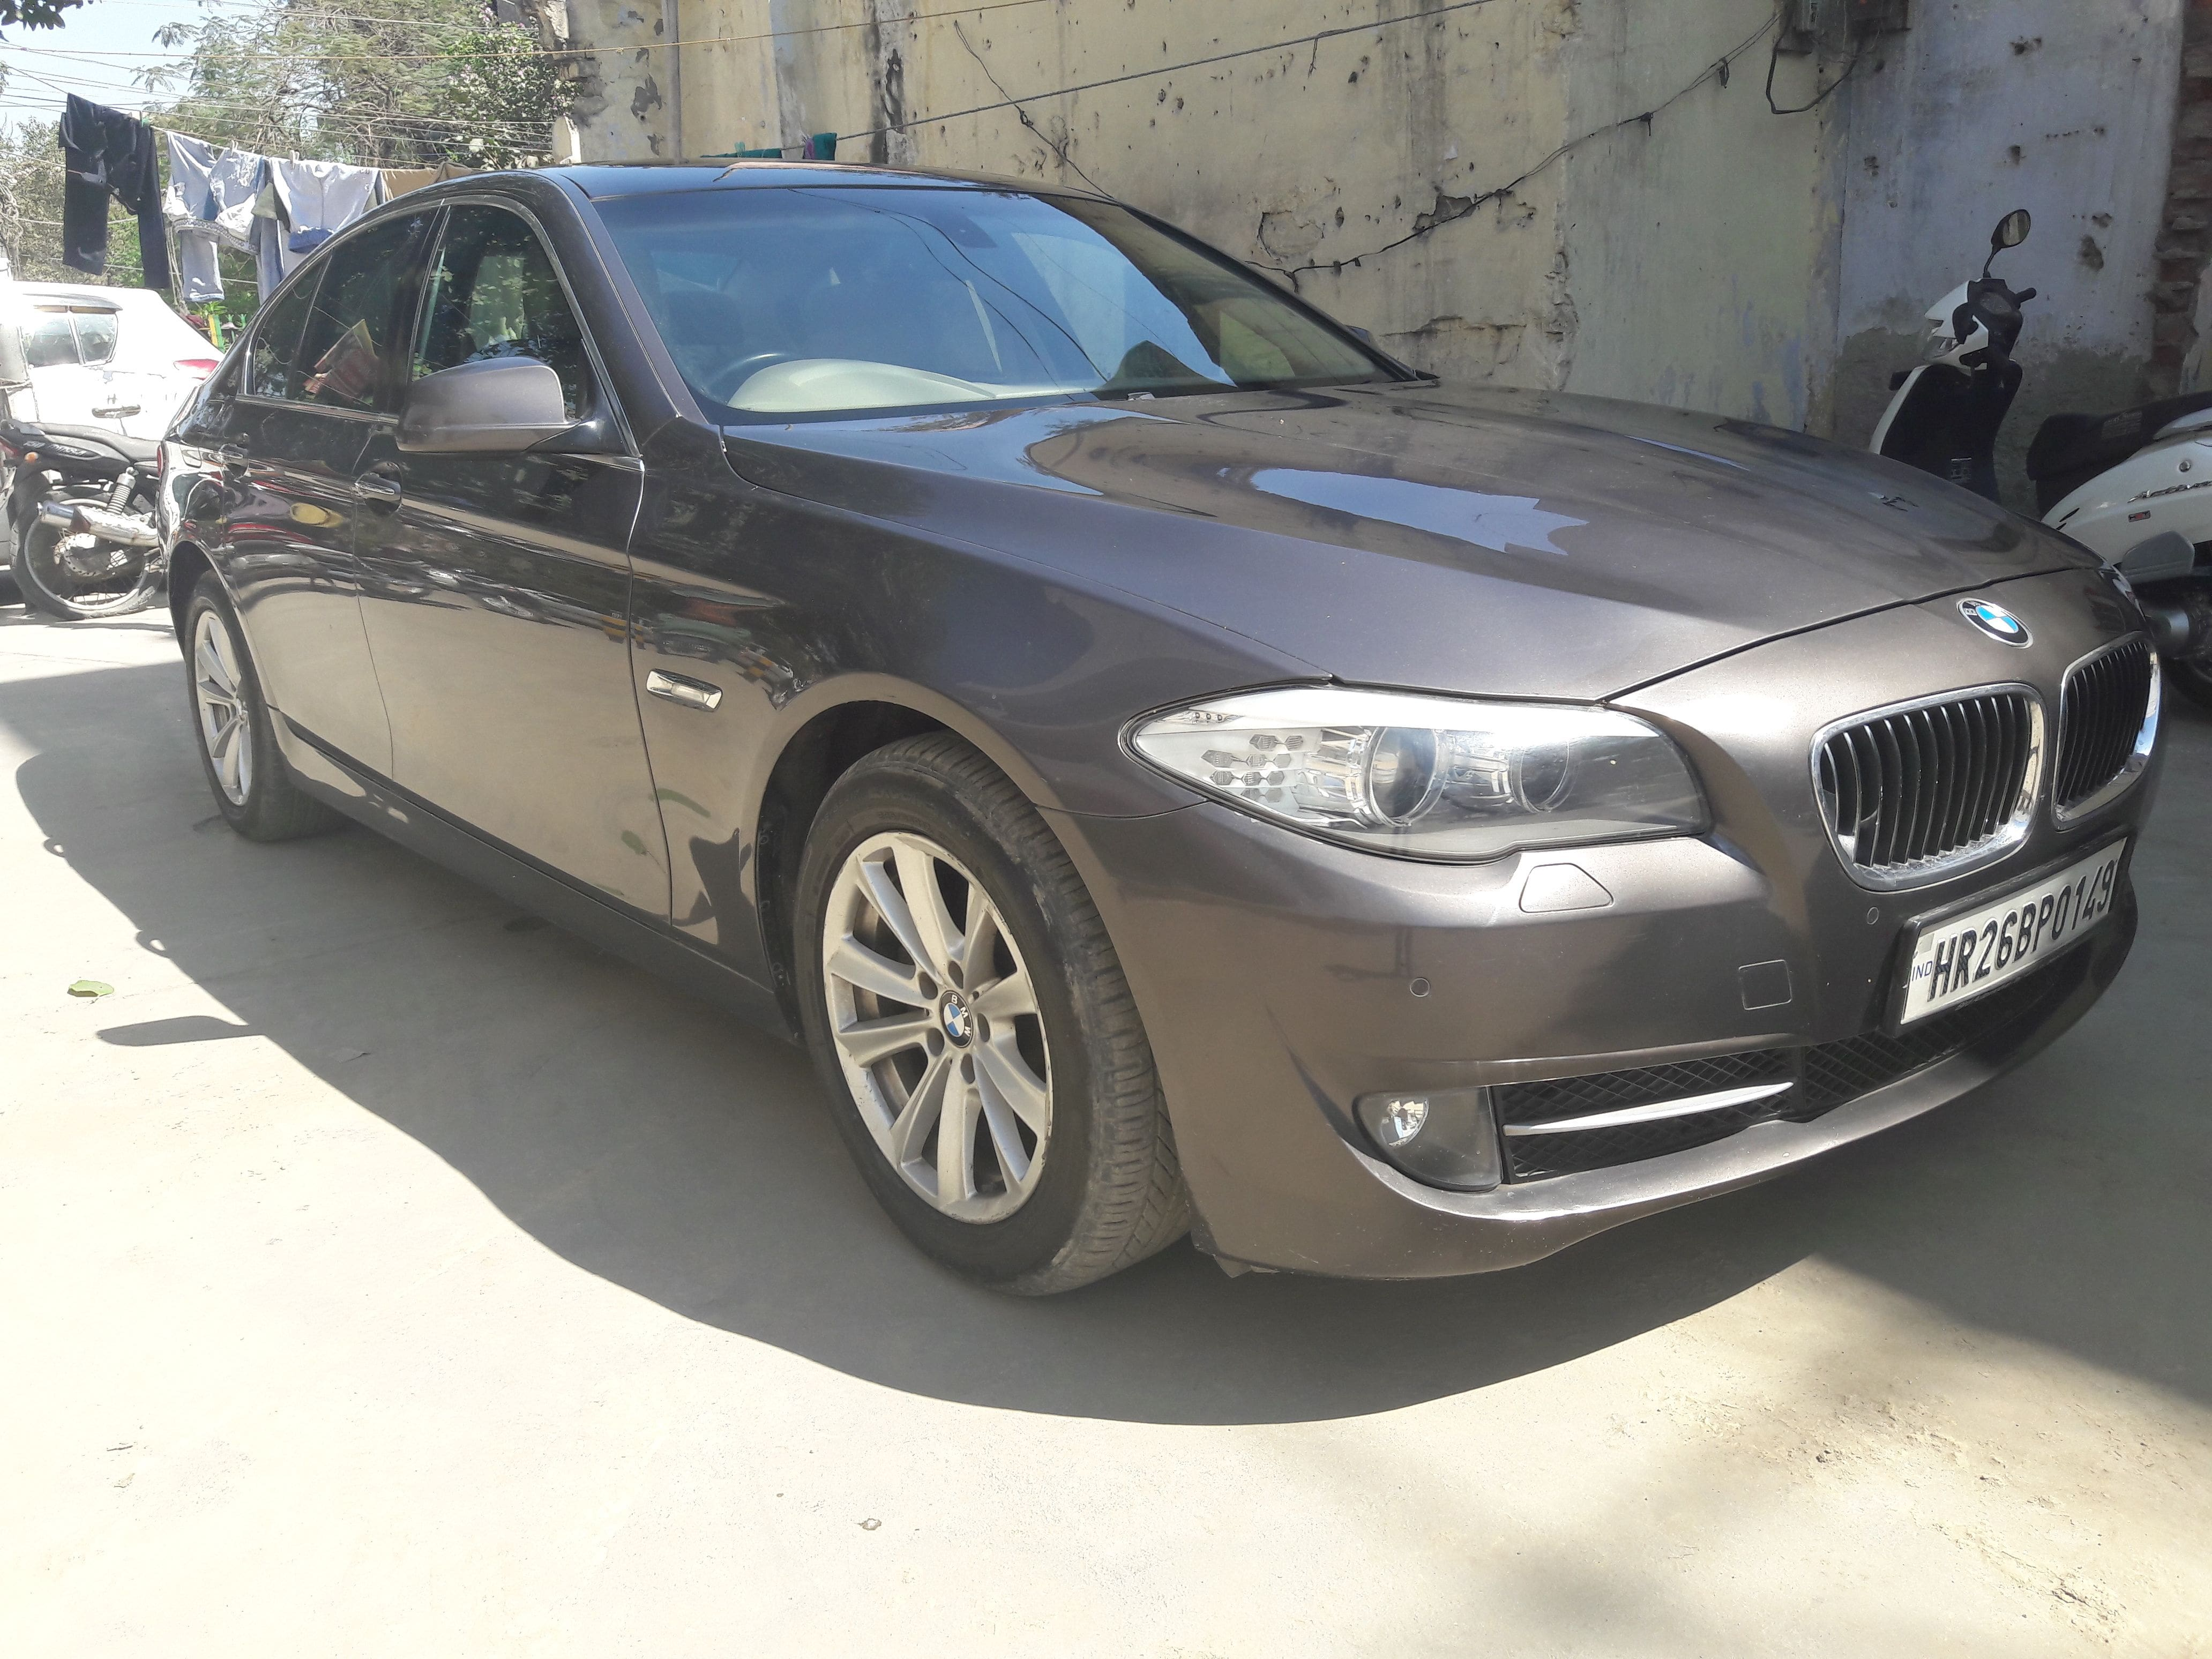 Used BMW 5 Series Page 2